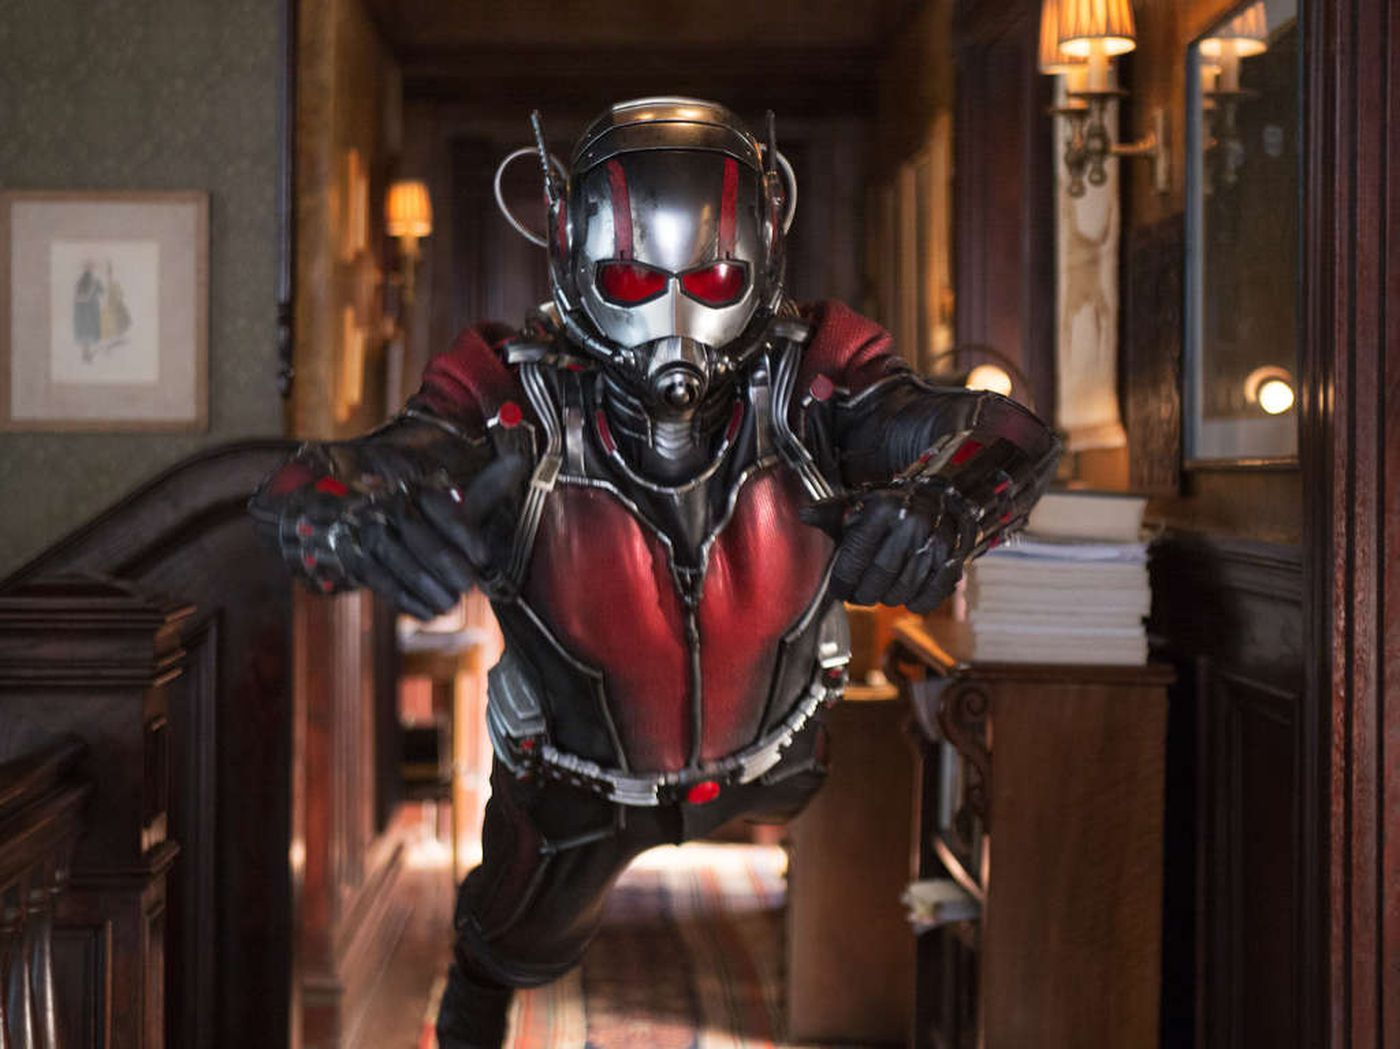 Paul Rudd as Scott Lang in Ant-Man.